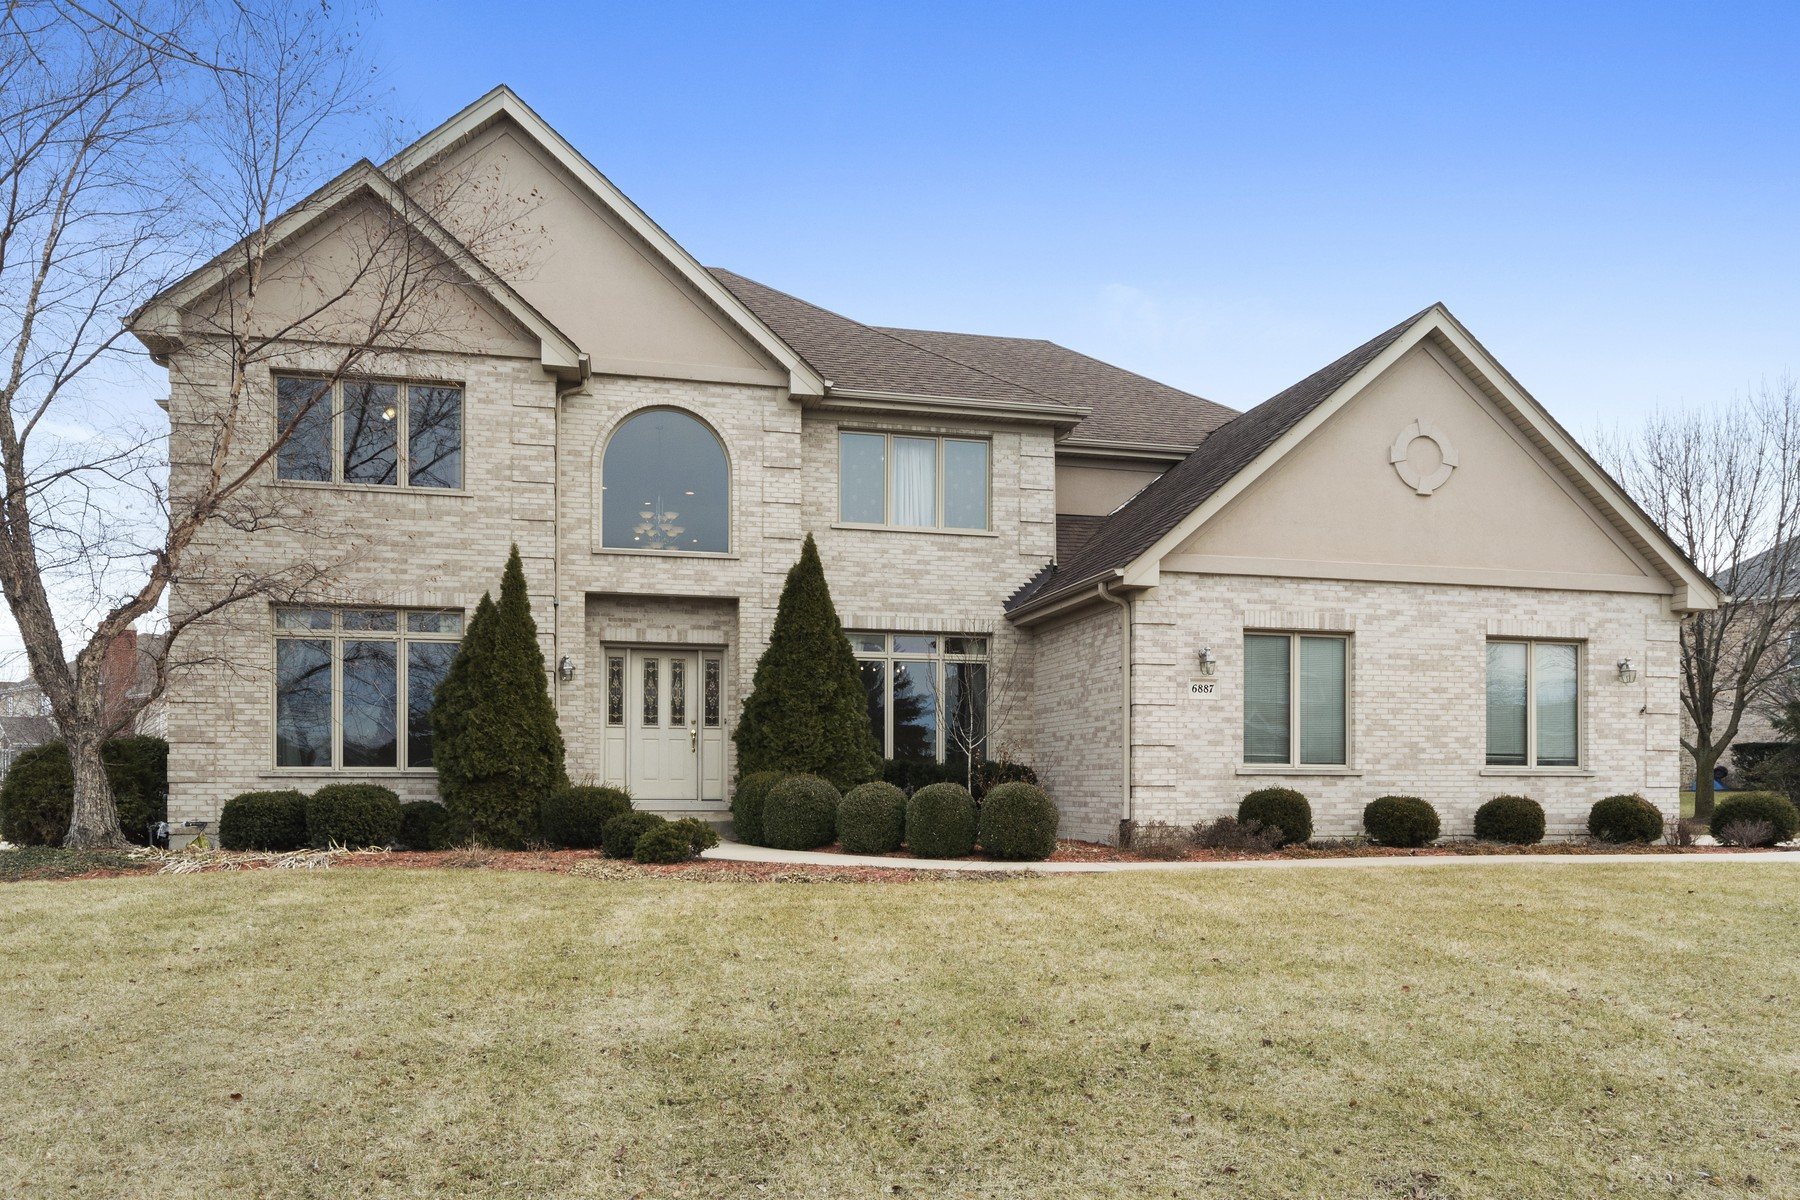 Single Family Home for Sale at Prominently Positioned Burr Ridge Home 6887 Fieldstone Drive Burr Ridge, Illinois, 60527 United States